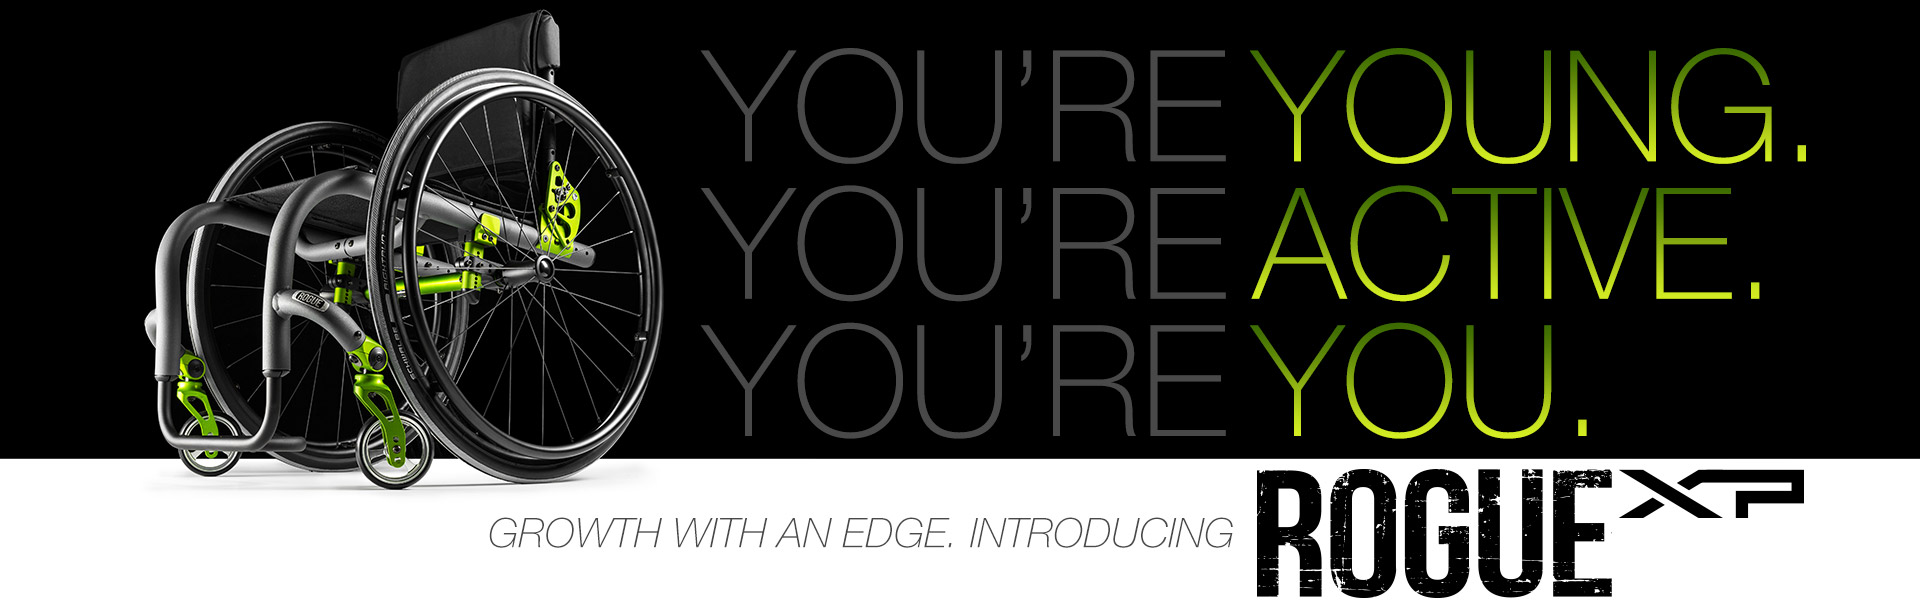 Introducing Rogue XP. Growth with an Edge.